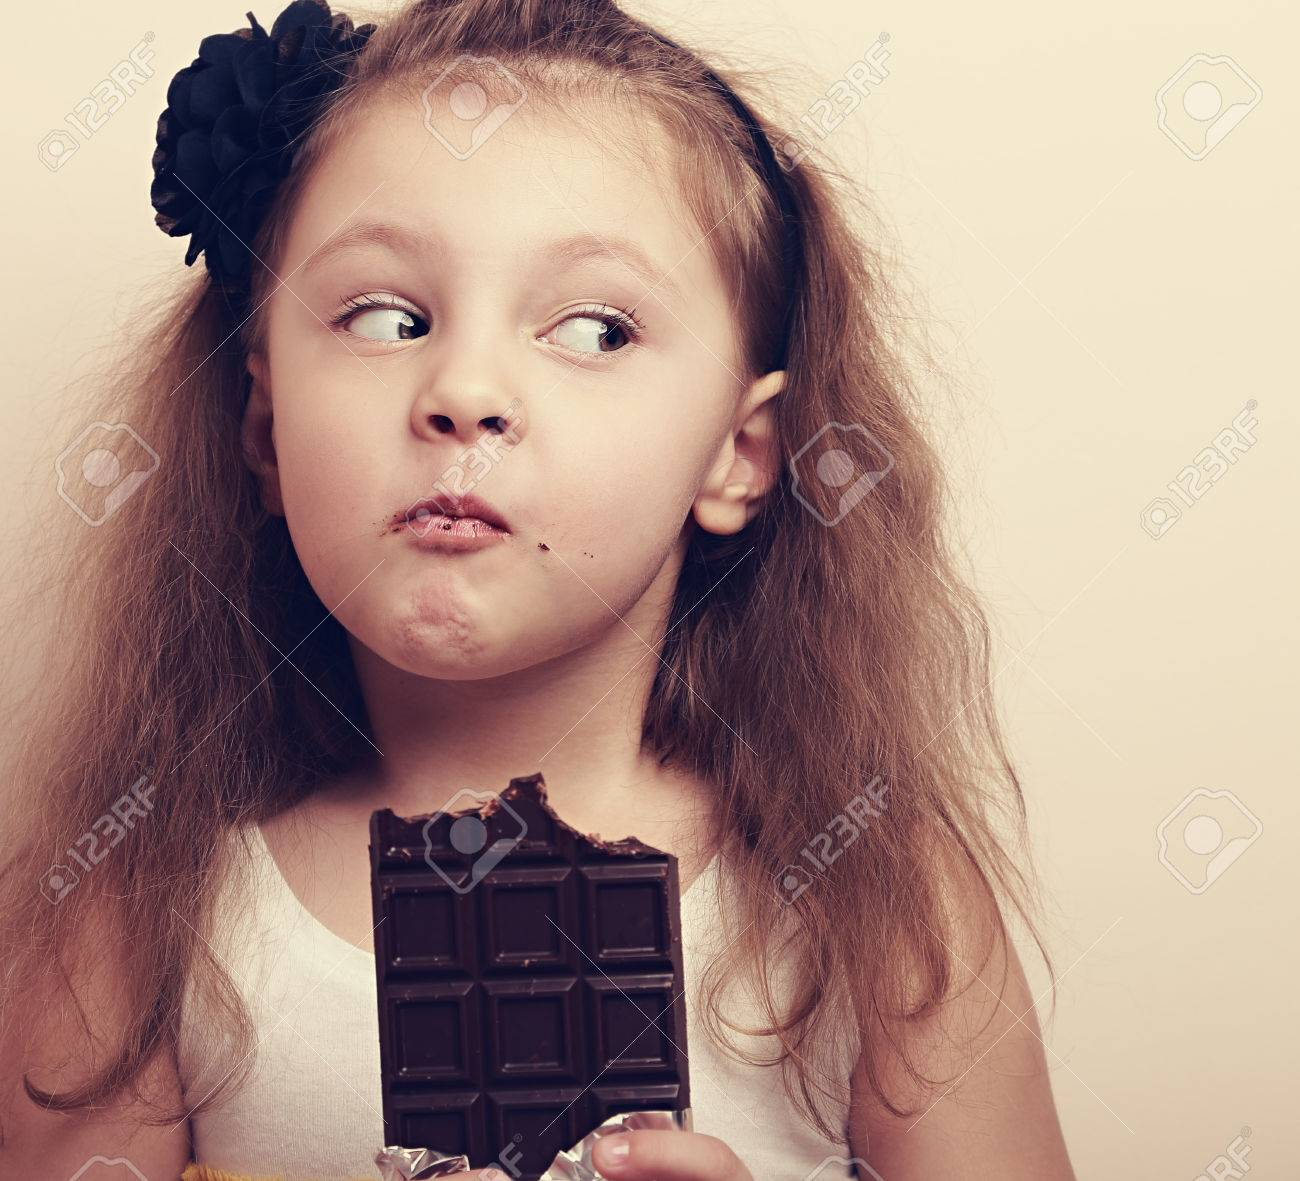 Thinking expression kid girl eating chocolate and looking fun